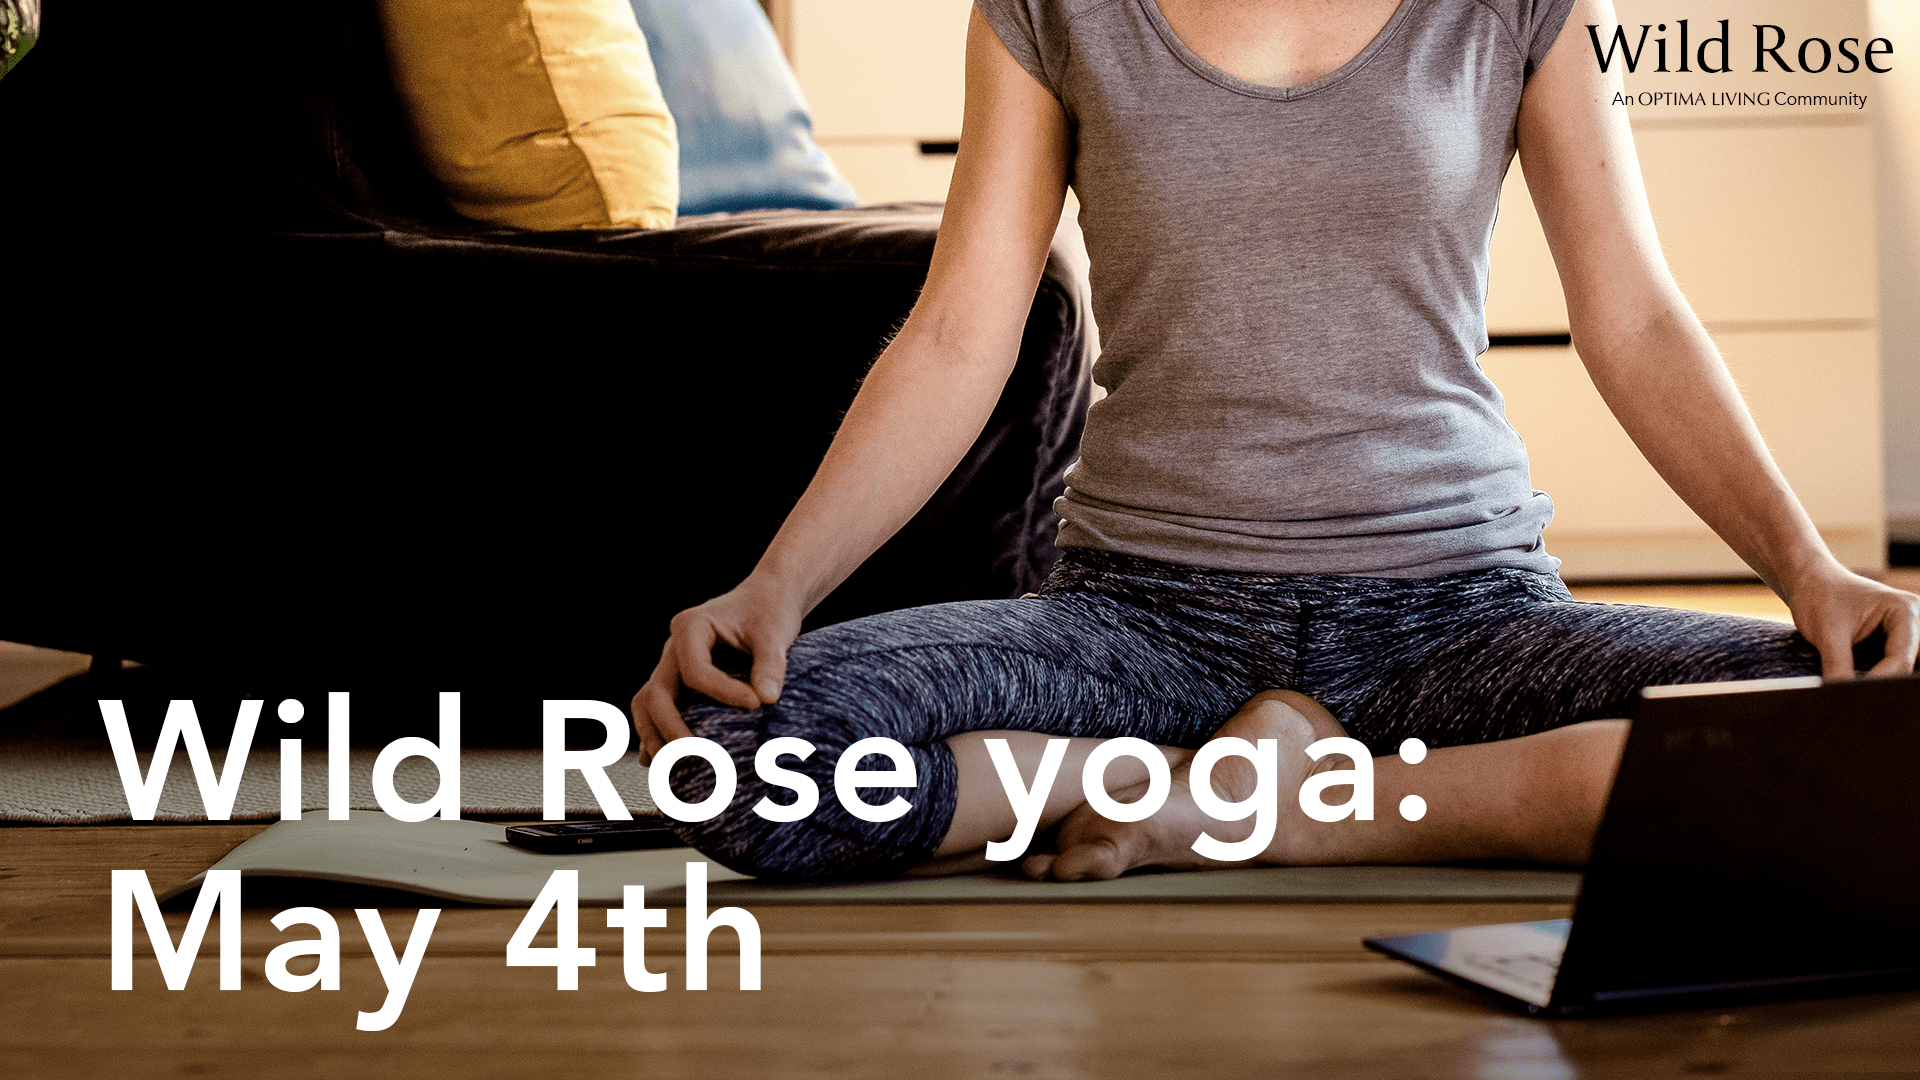 Wild Rose Yoga: May 4th